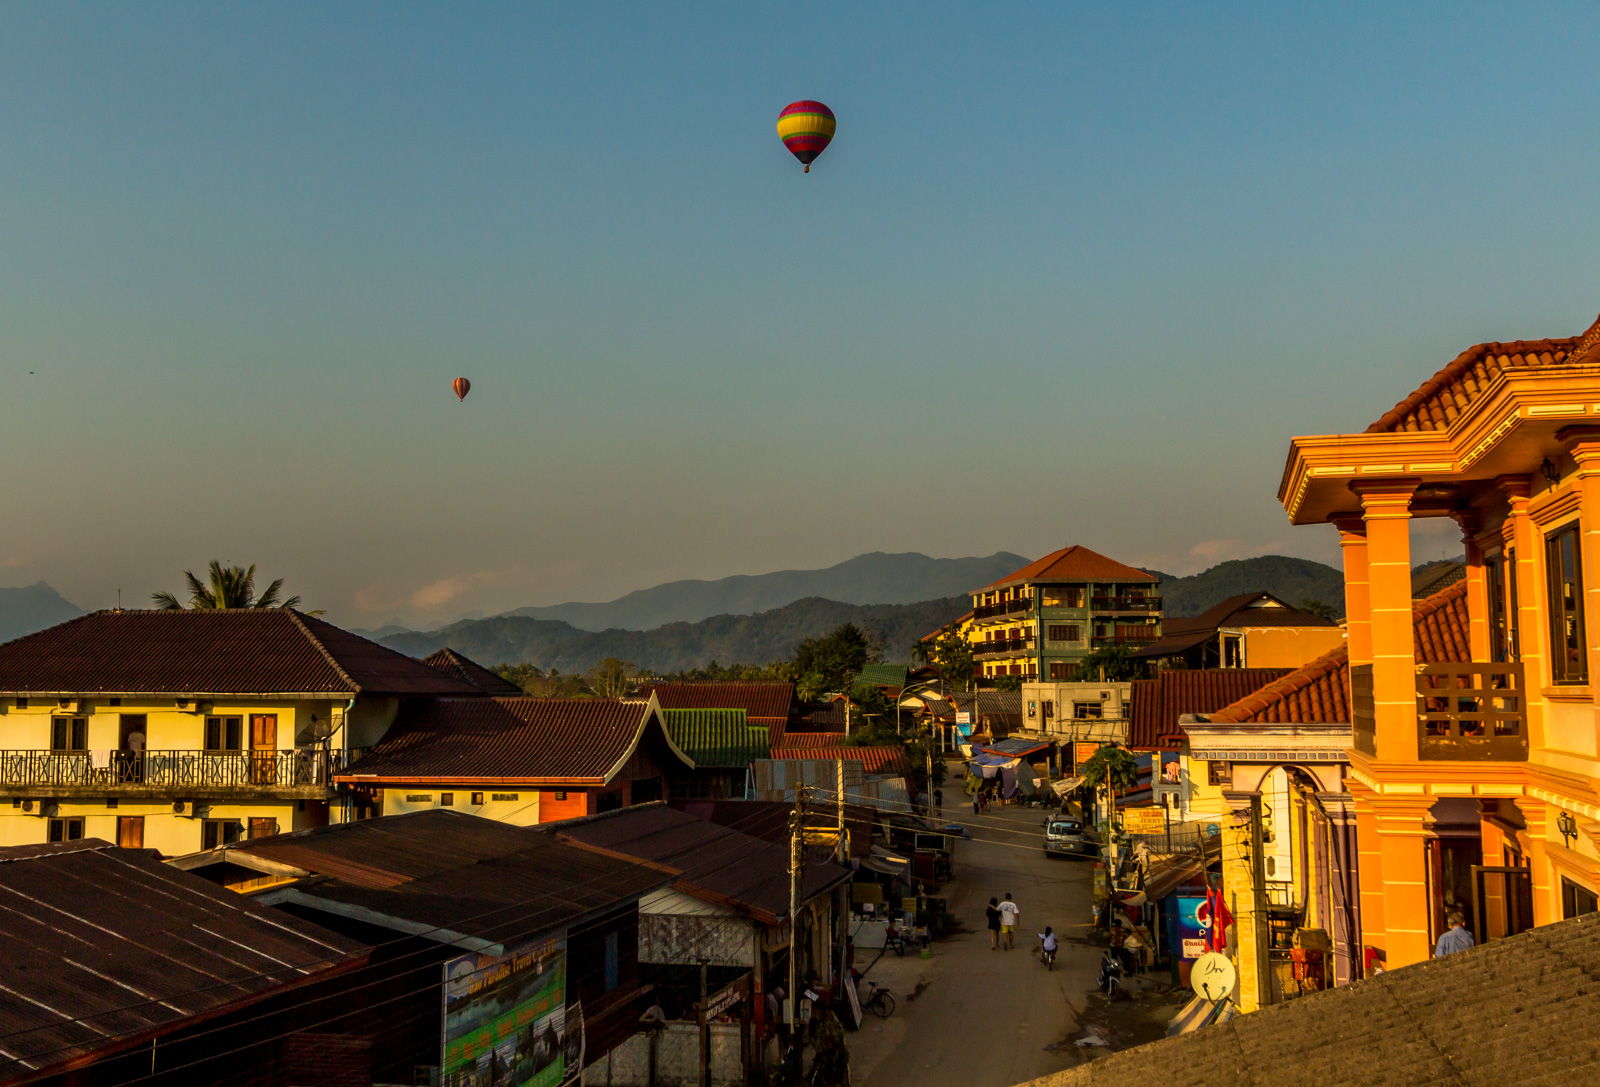 Balloons over Vang Vieng.